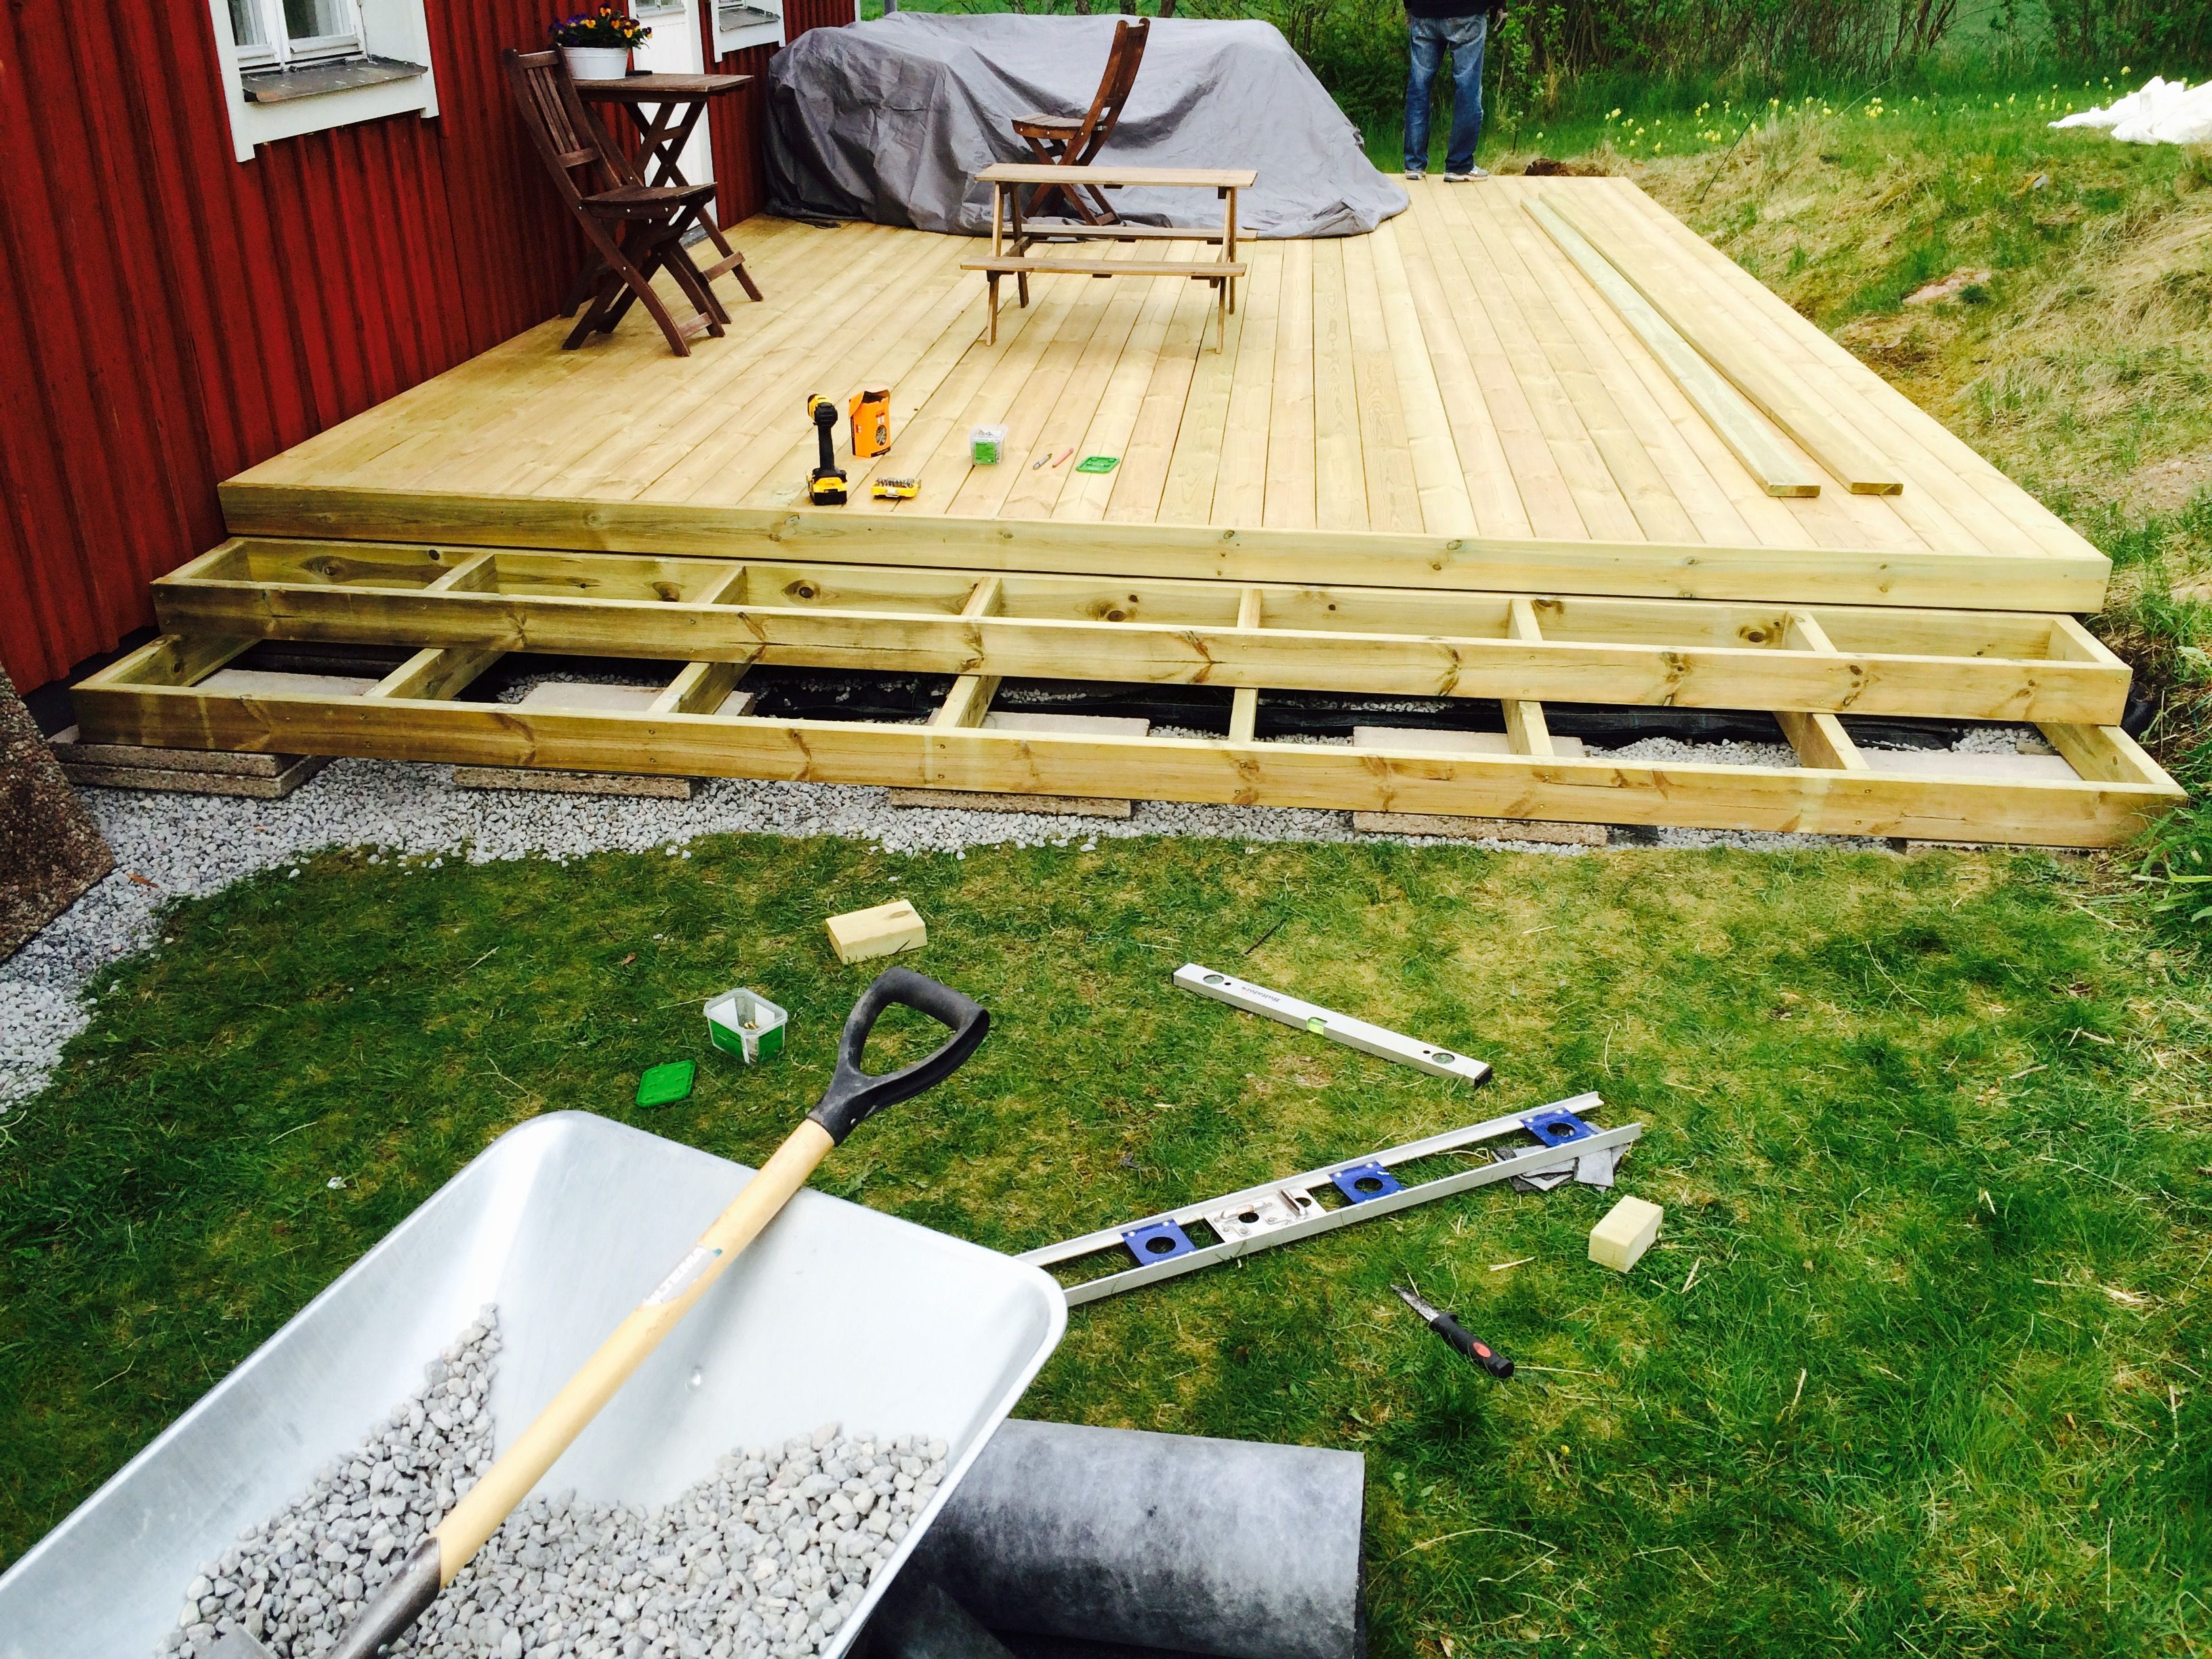 Bygga trappa till altan   Altantrappa   Pinterest   Ute, Bench and ...